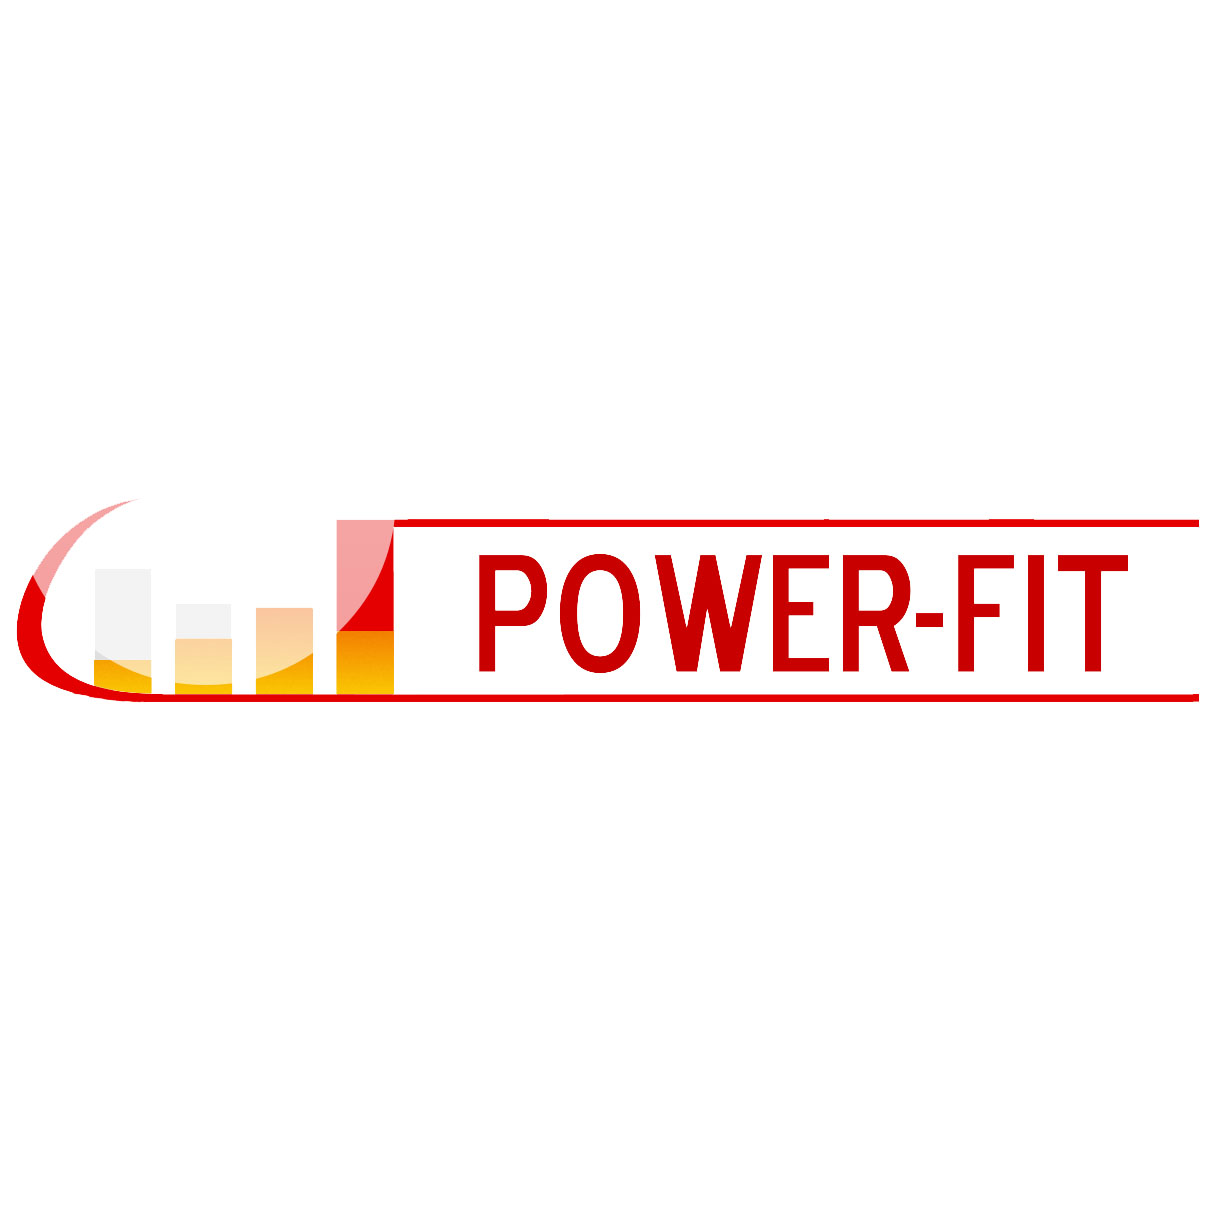 Power-Fit.ch - Shared Personnal Trainning SOFT